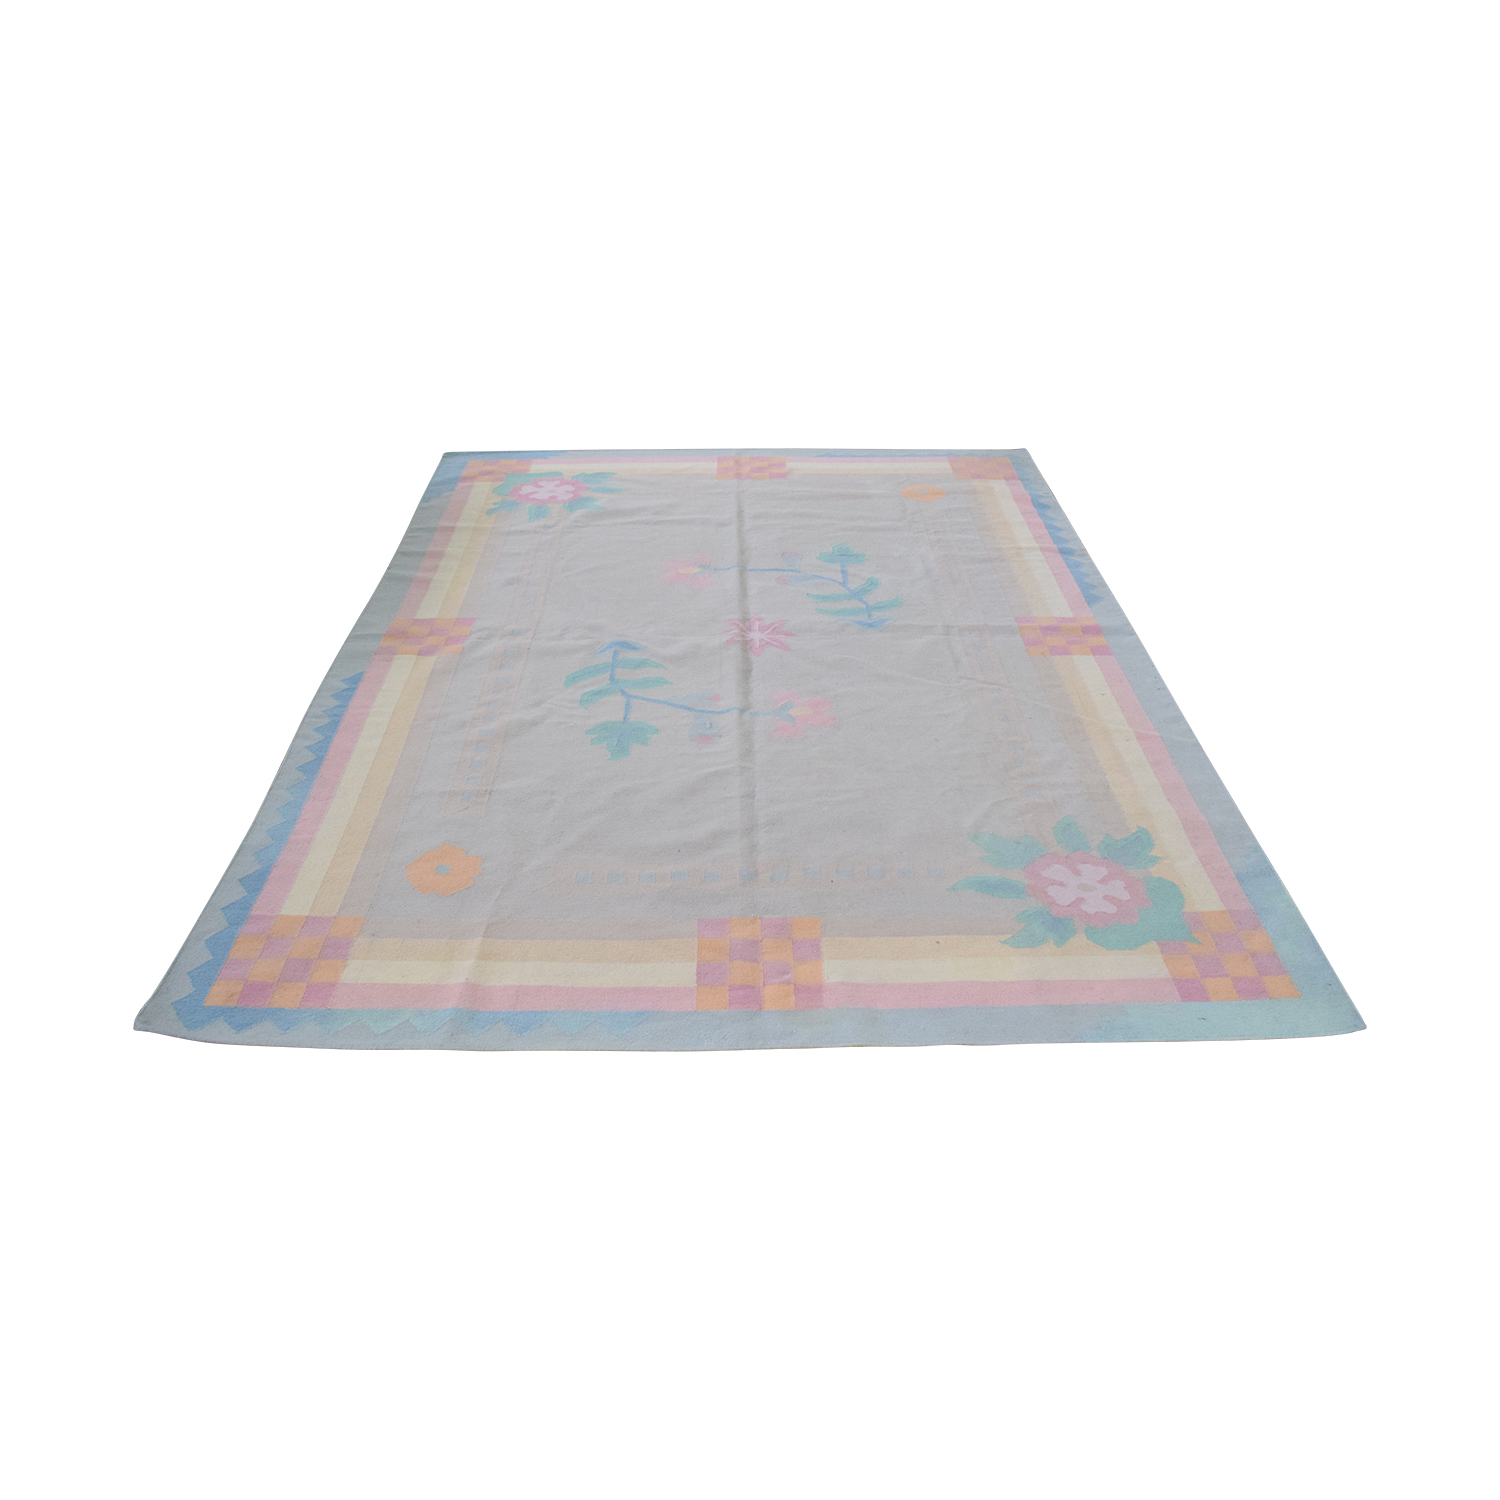 ABC Carpet & Home ABC Carpet & Home Pastel Rug multi